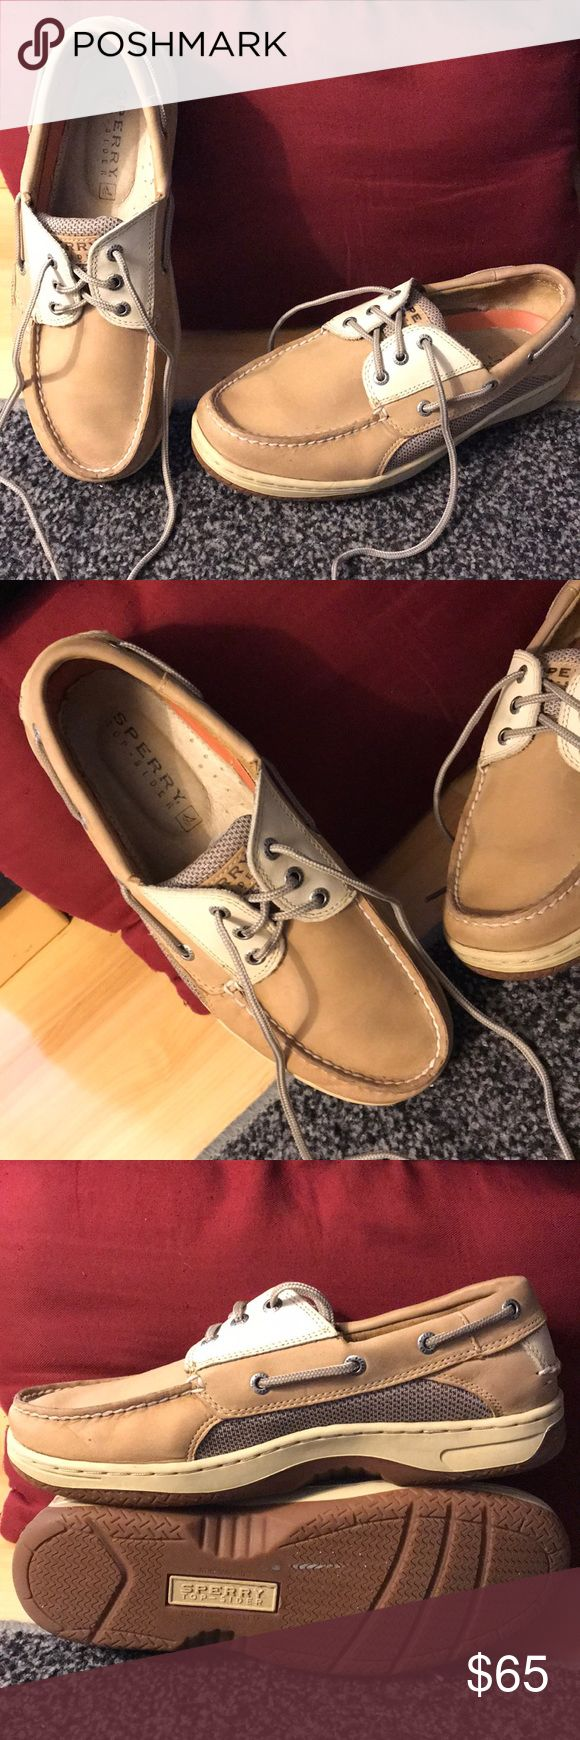 Sperry Top-Sider Sperry Top-Sider. Leather upper, non-marking, contour system. Excellent used condition. Men's. Shoes Boat Shoes